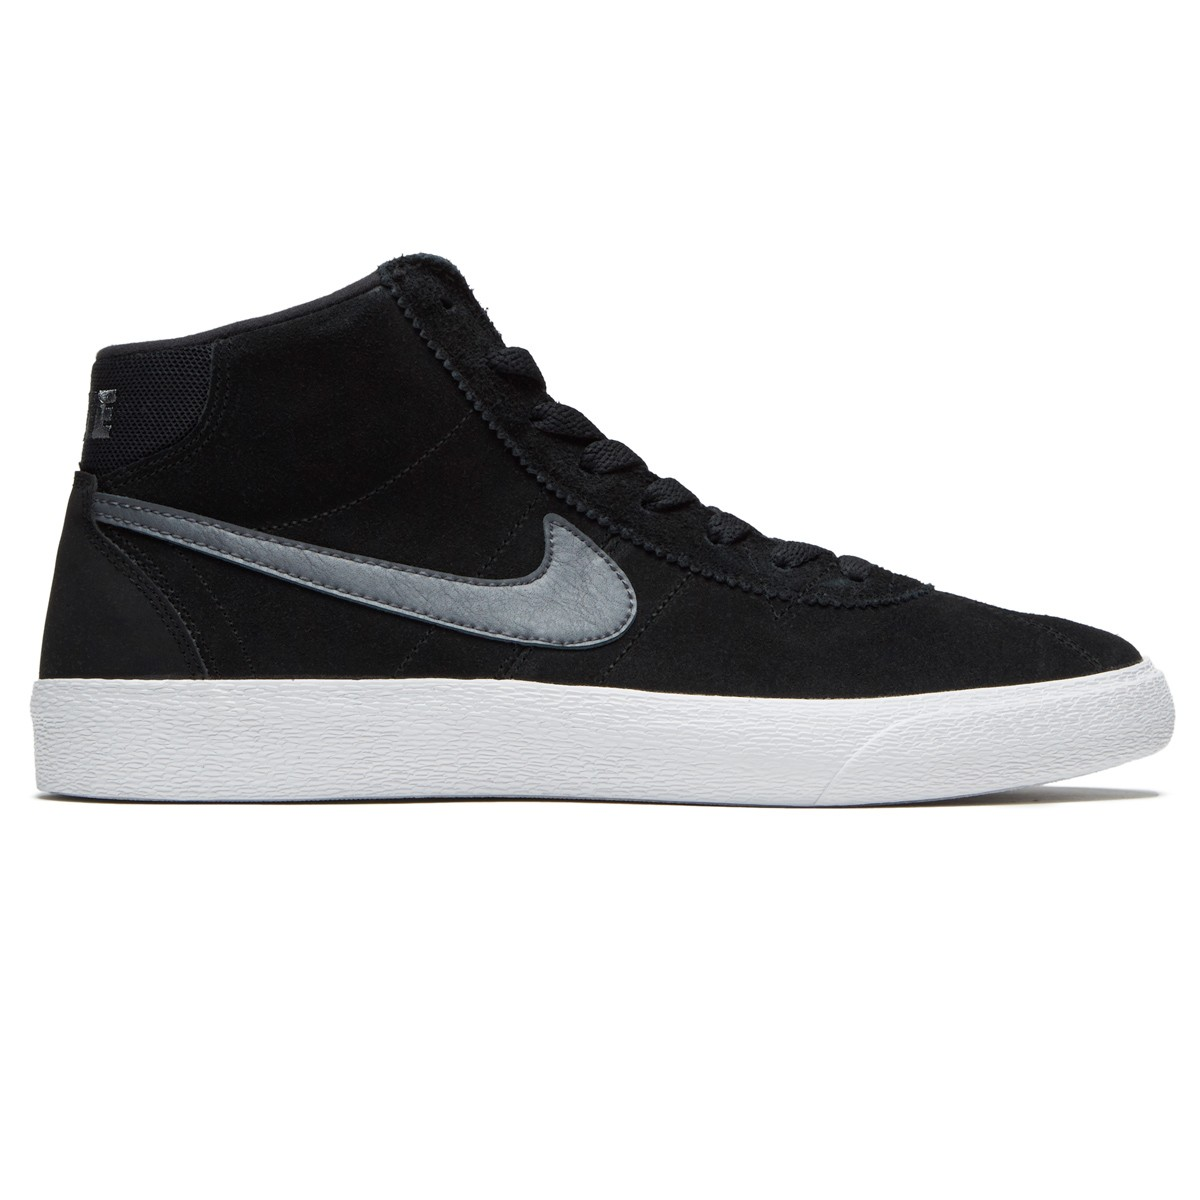 Nike SB Bruin Hi Women s Shoes - Black Dark Grey White e94c01472e